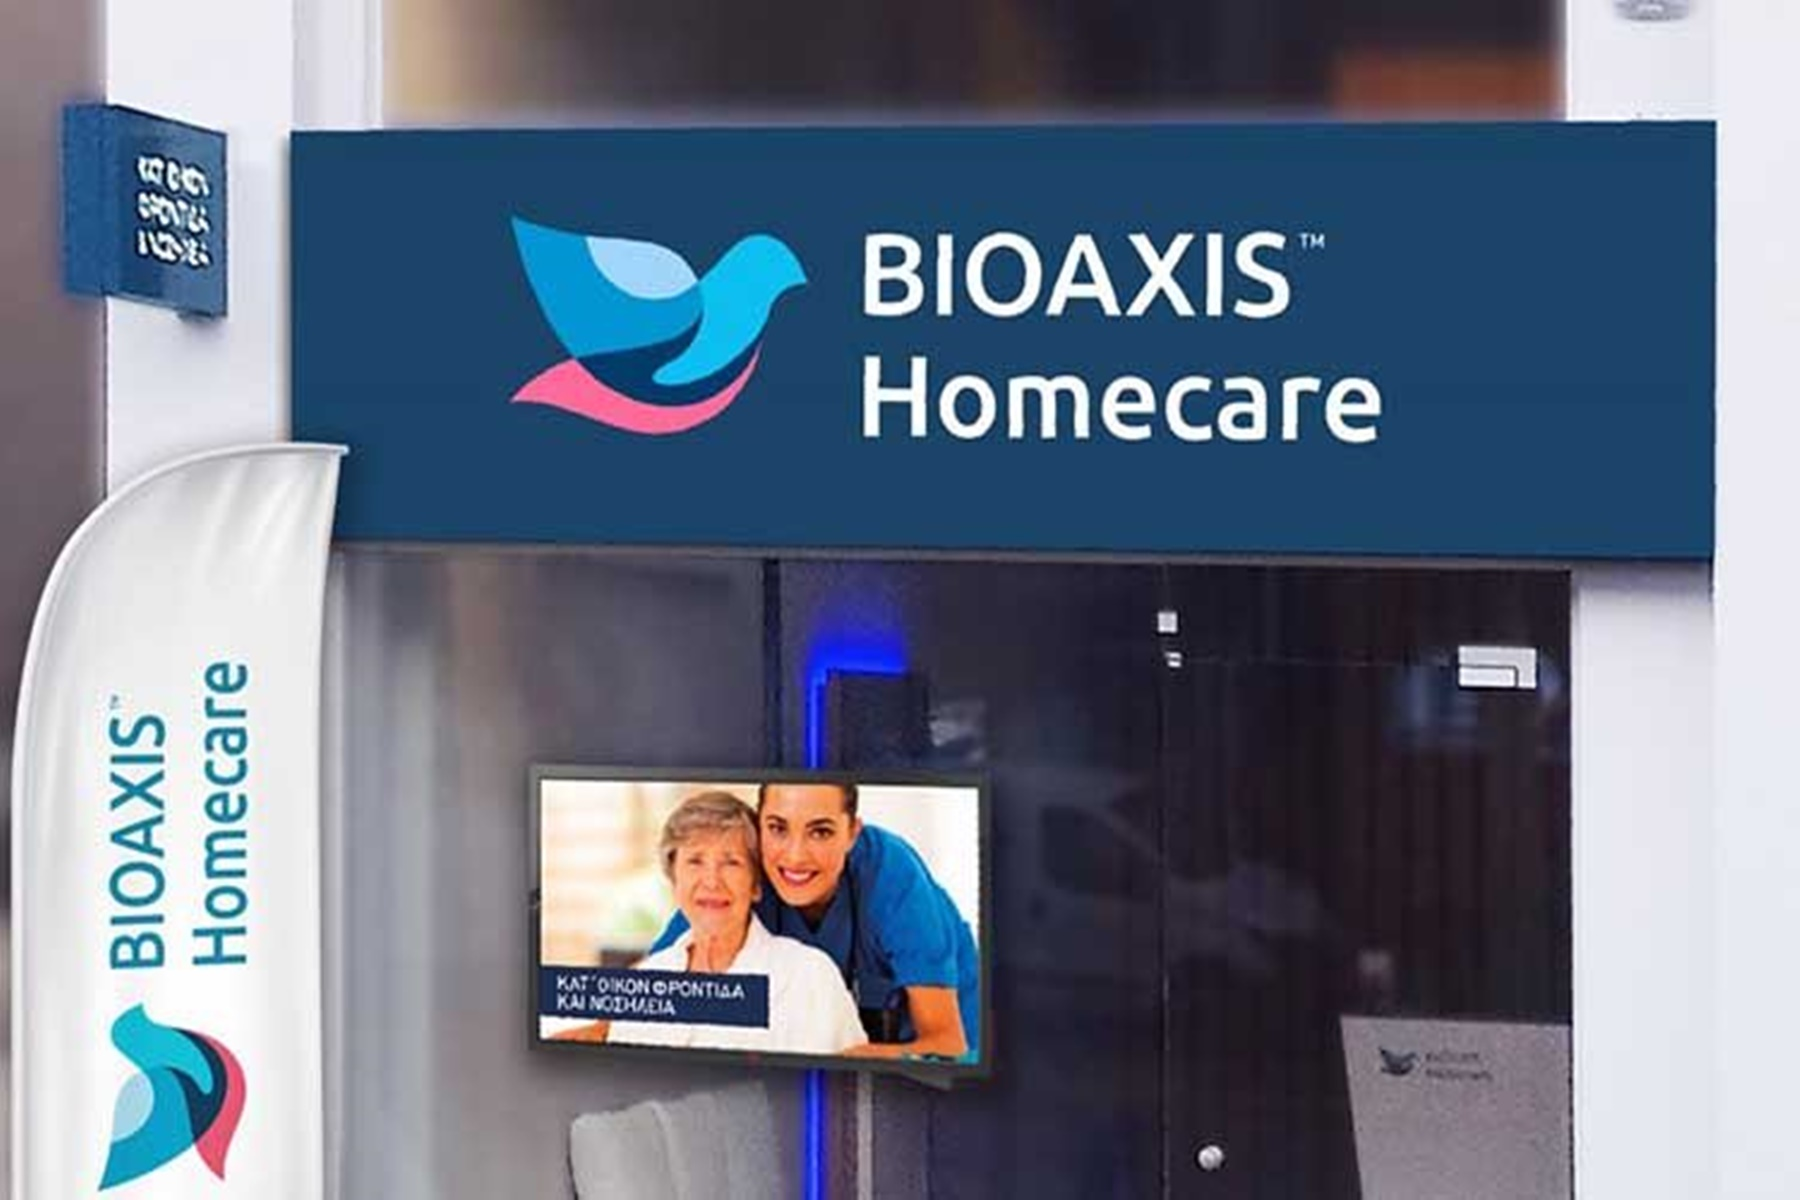 Medtronic Bioaxis : Ανακοινώνουν επίσημα την συνεργασία τους